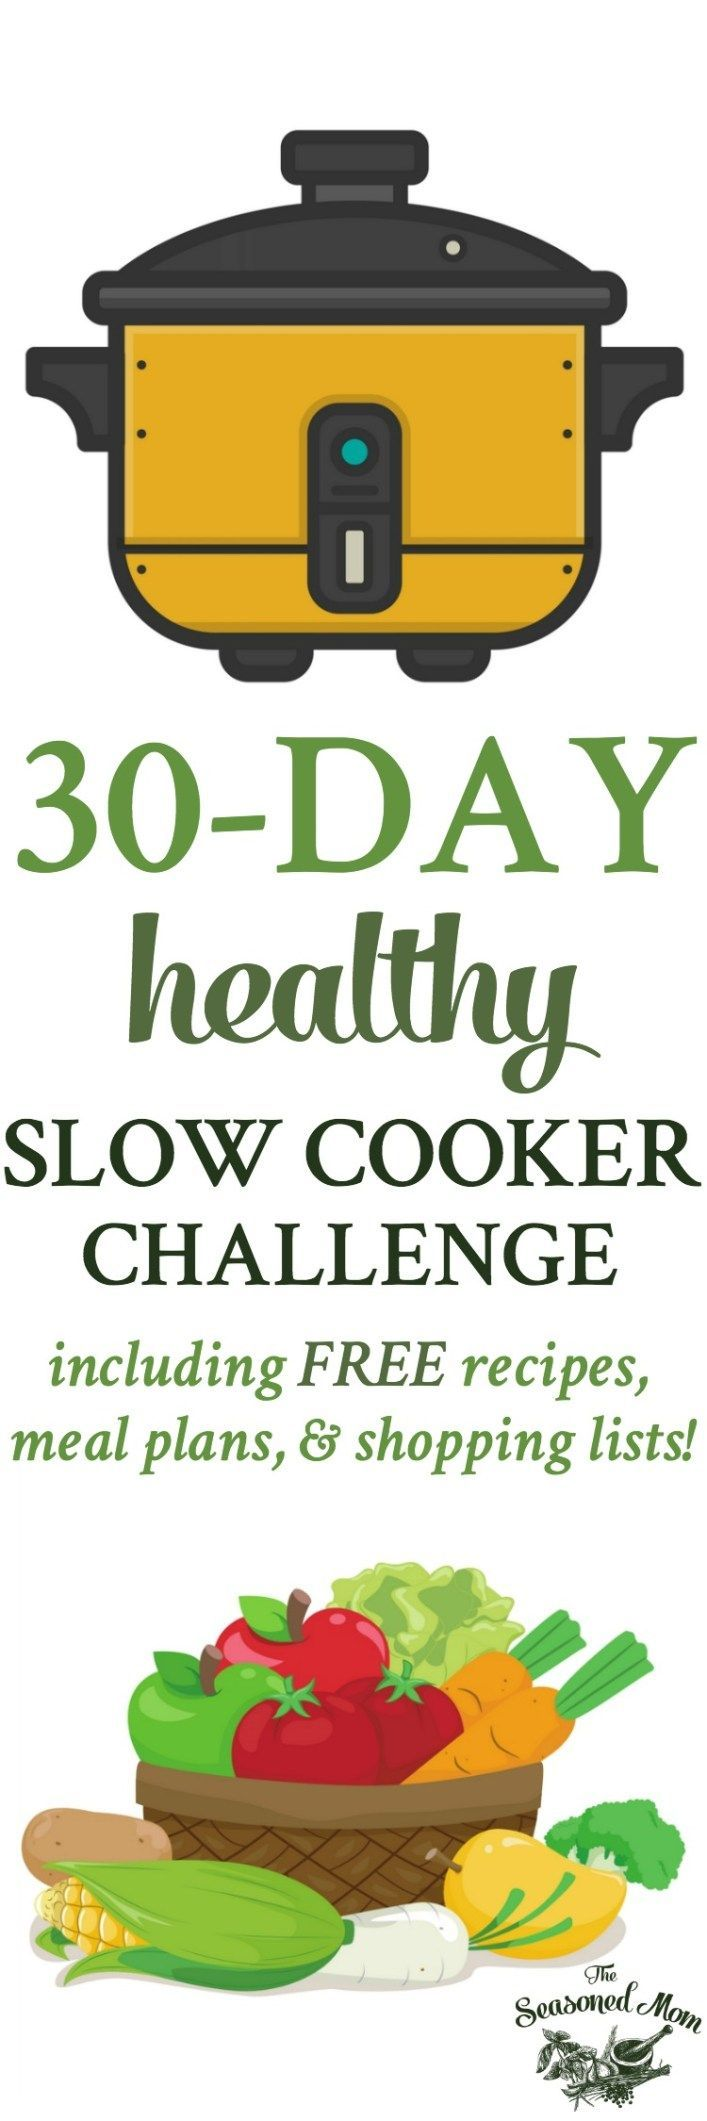 Try this 30-Day Healthy Slow Cooker Challenge to get back on track with healthy dinners in the New Year! Healthy Dinner Recipes | Healthy Crock Pot Recipes | Easy Dinner Ideas #slowcooker #crockpot #healthydinner #healthyrecipes